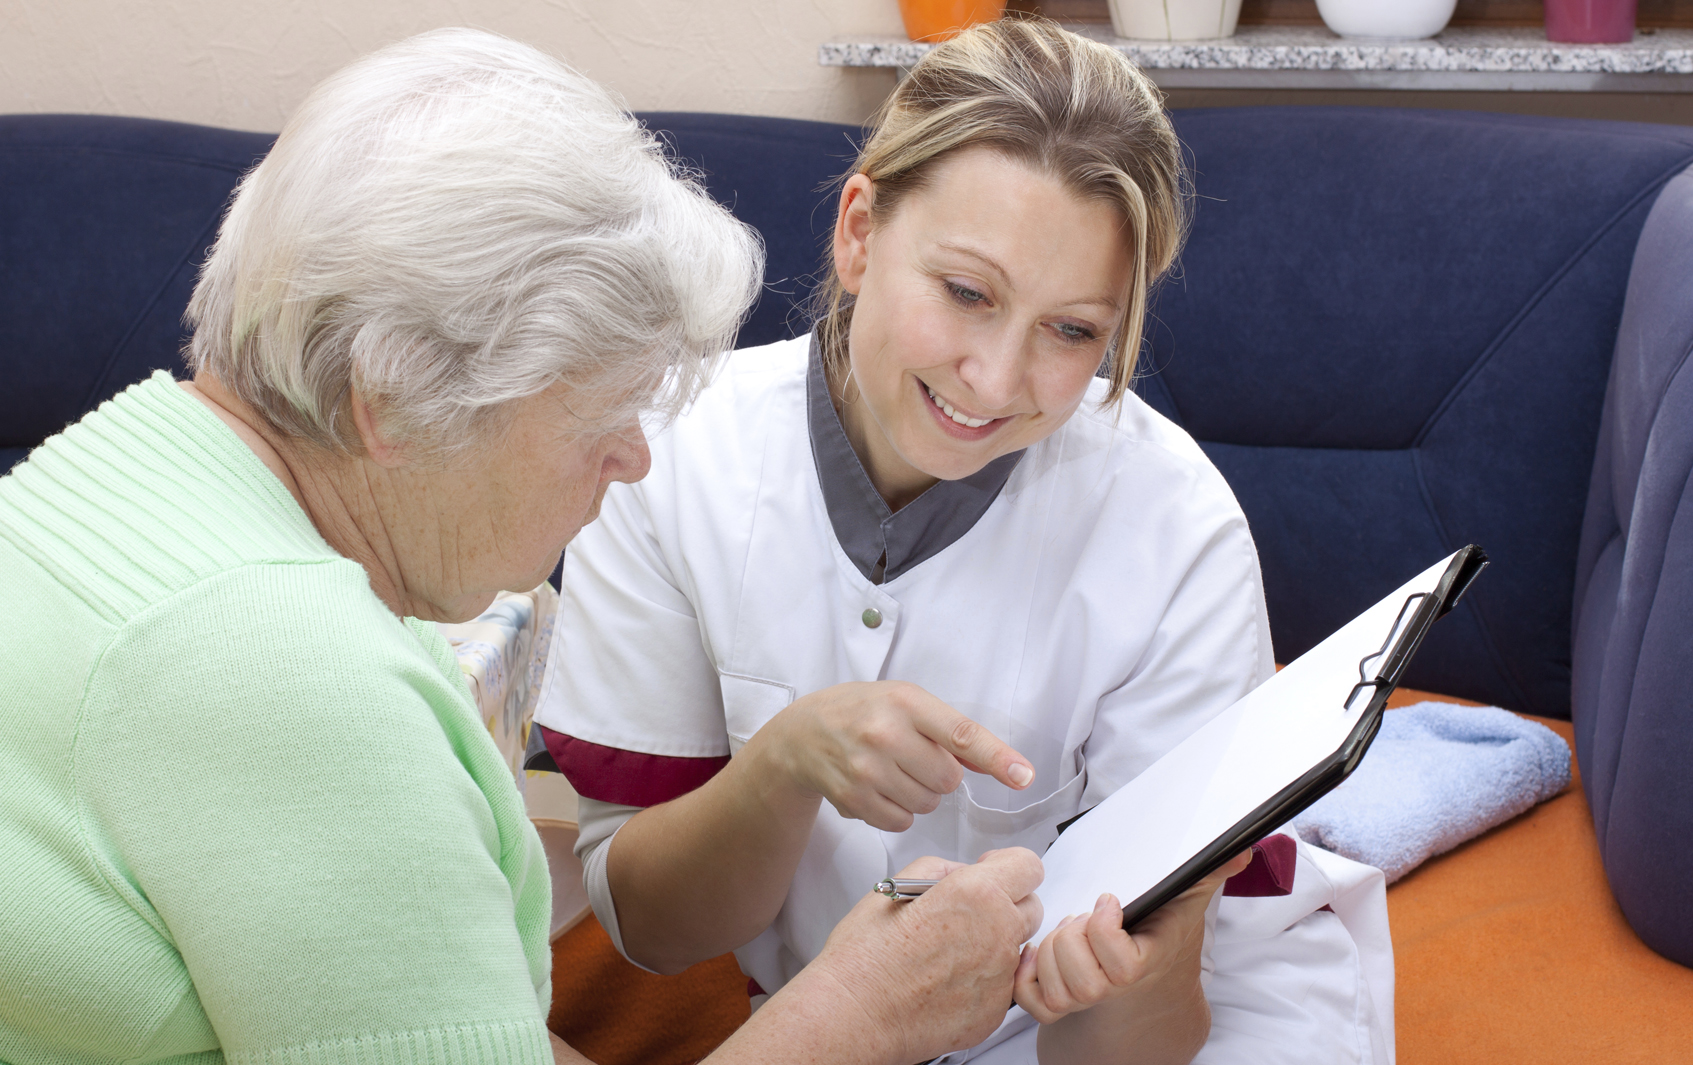 Patient speaking with research assistant